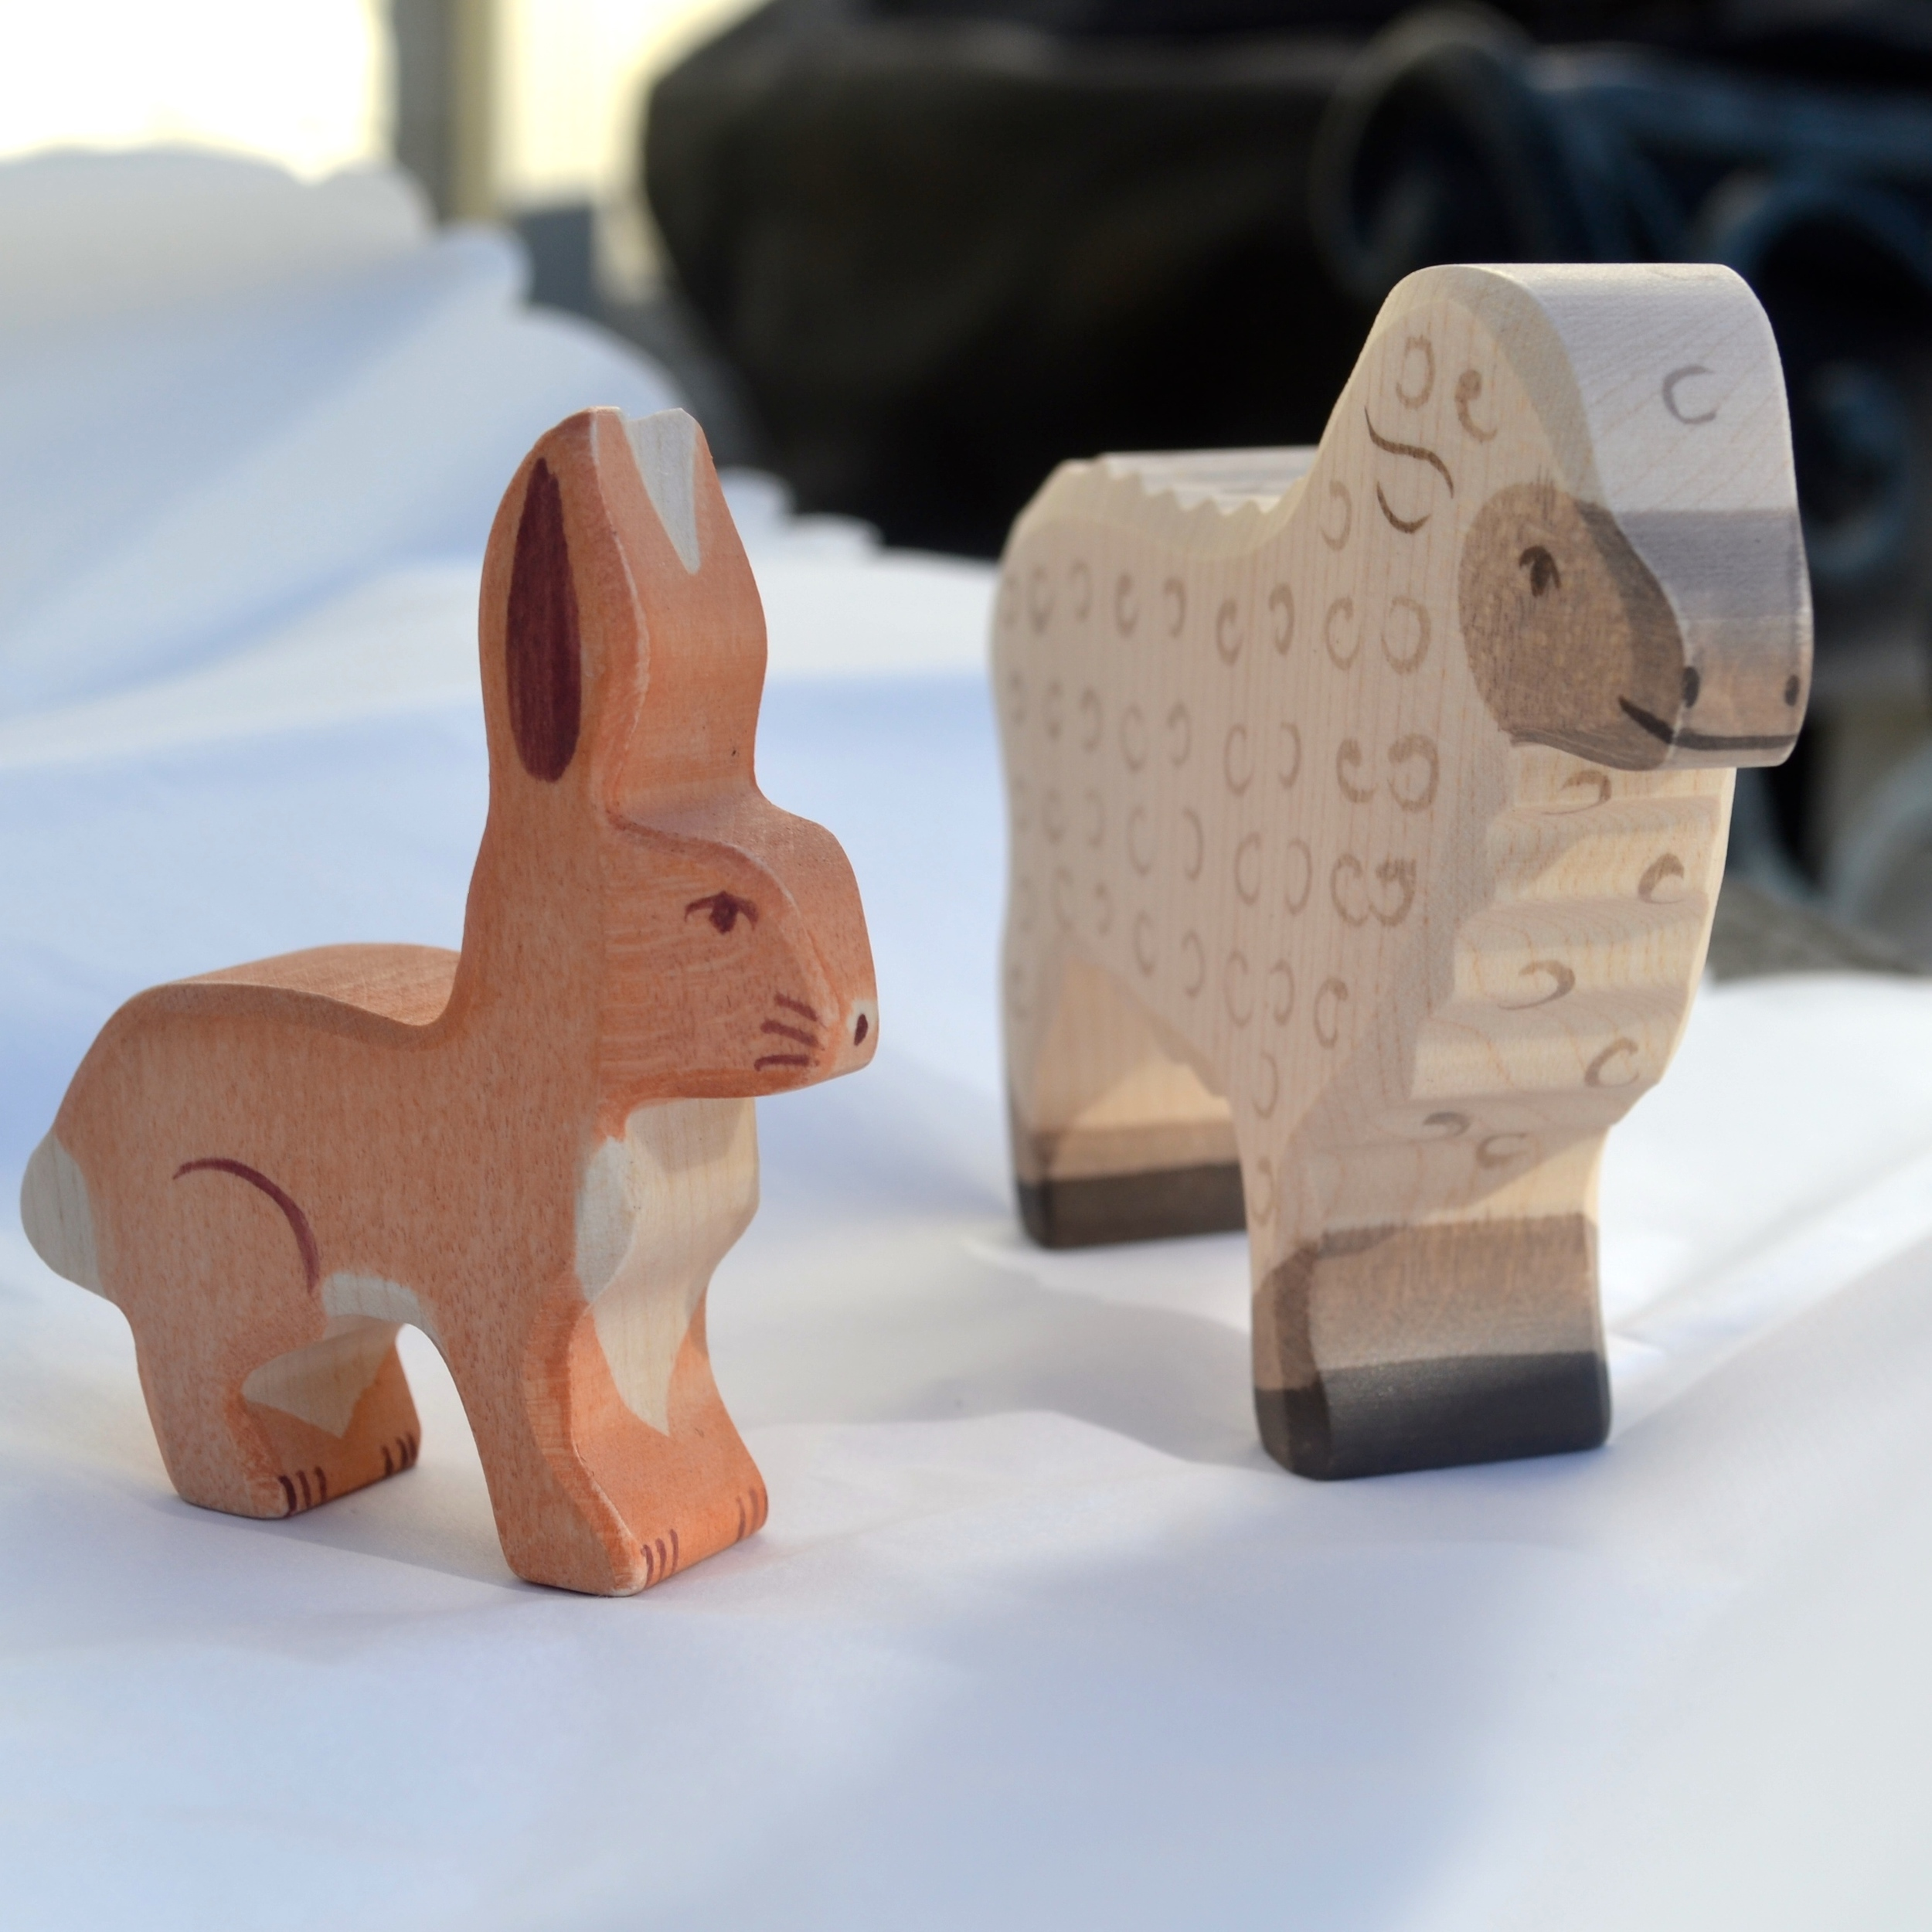 Wooden bunny and sheep toys from  Norman & Jules .